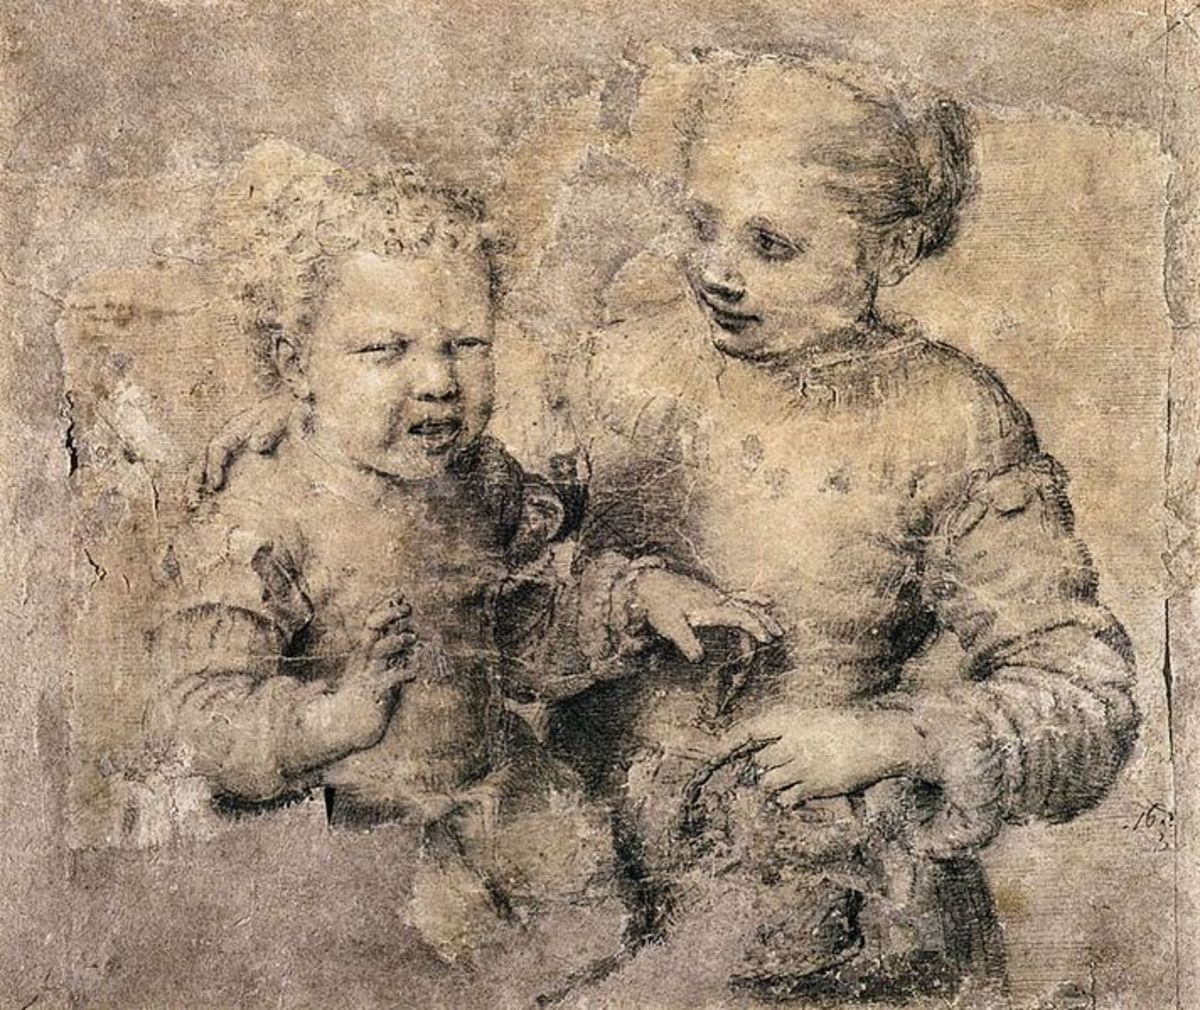 The child bitten by a Crayfish (1555), Naples, Museo di Capodimonte